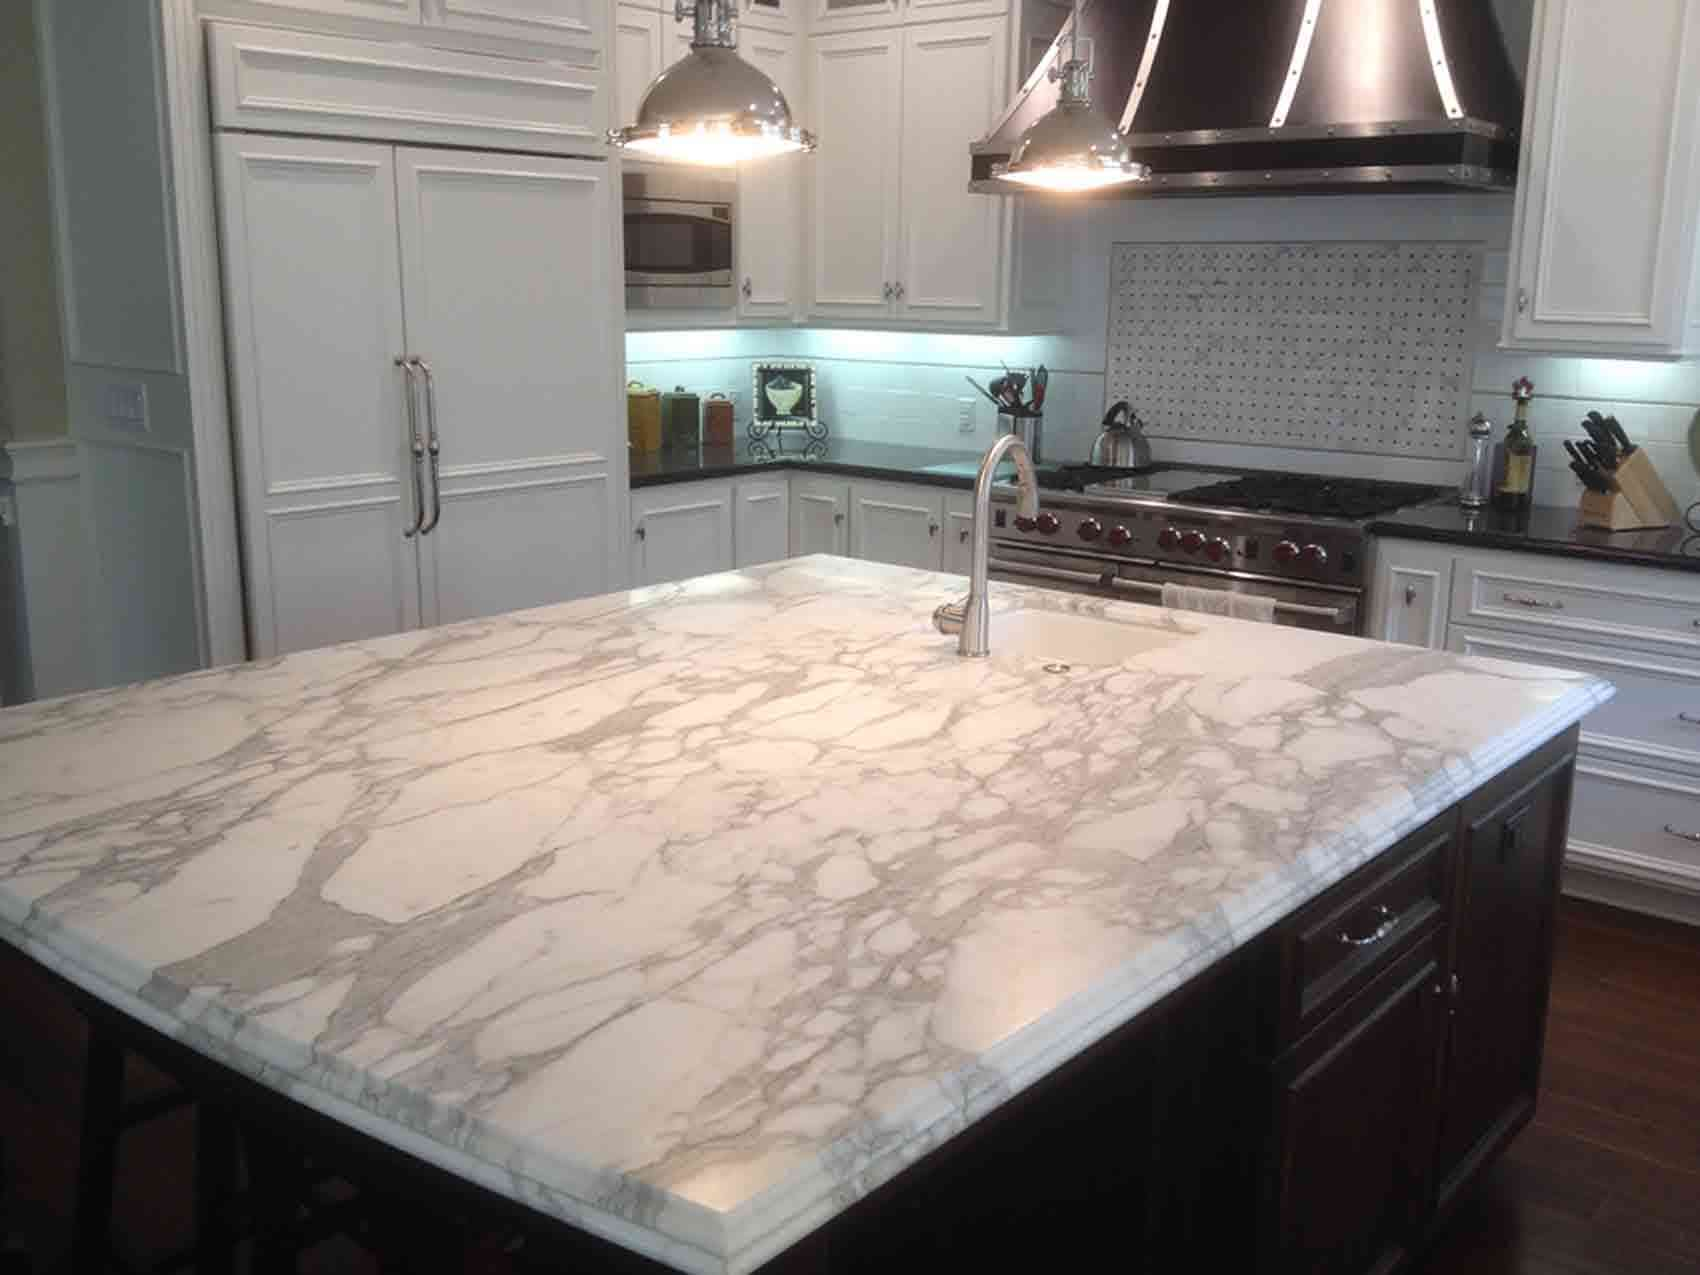 Clearwater's Best Granite, Marble and Quartz Countertops Supplier